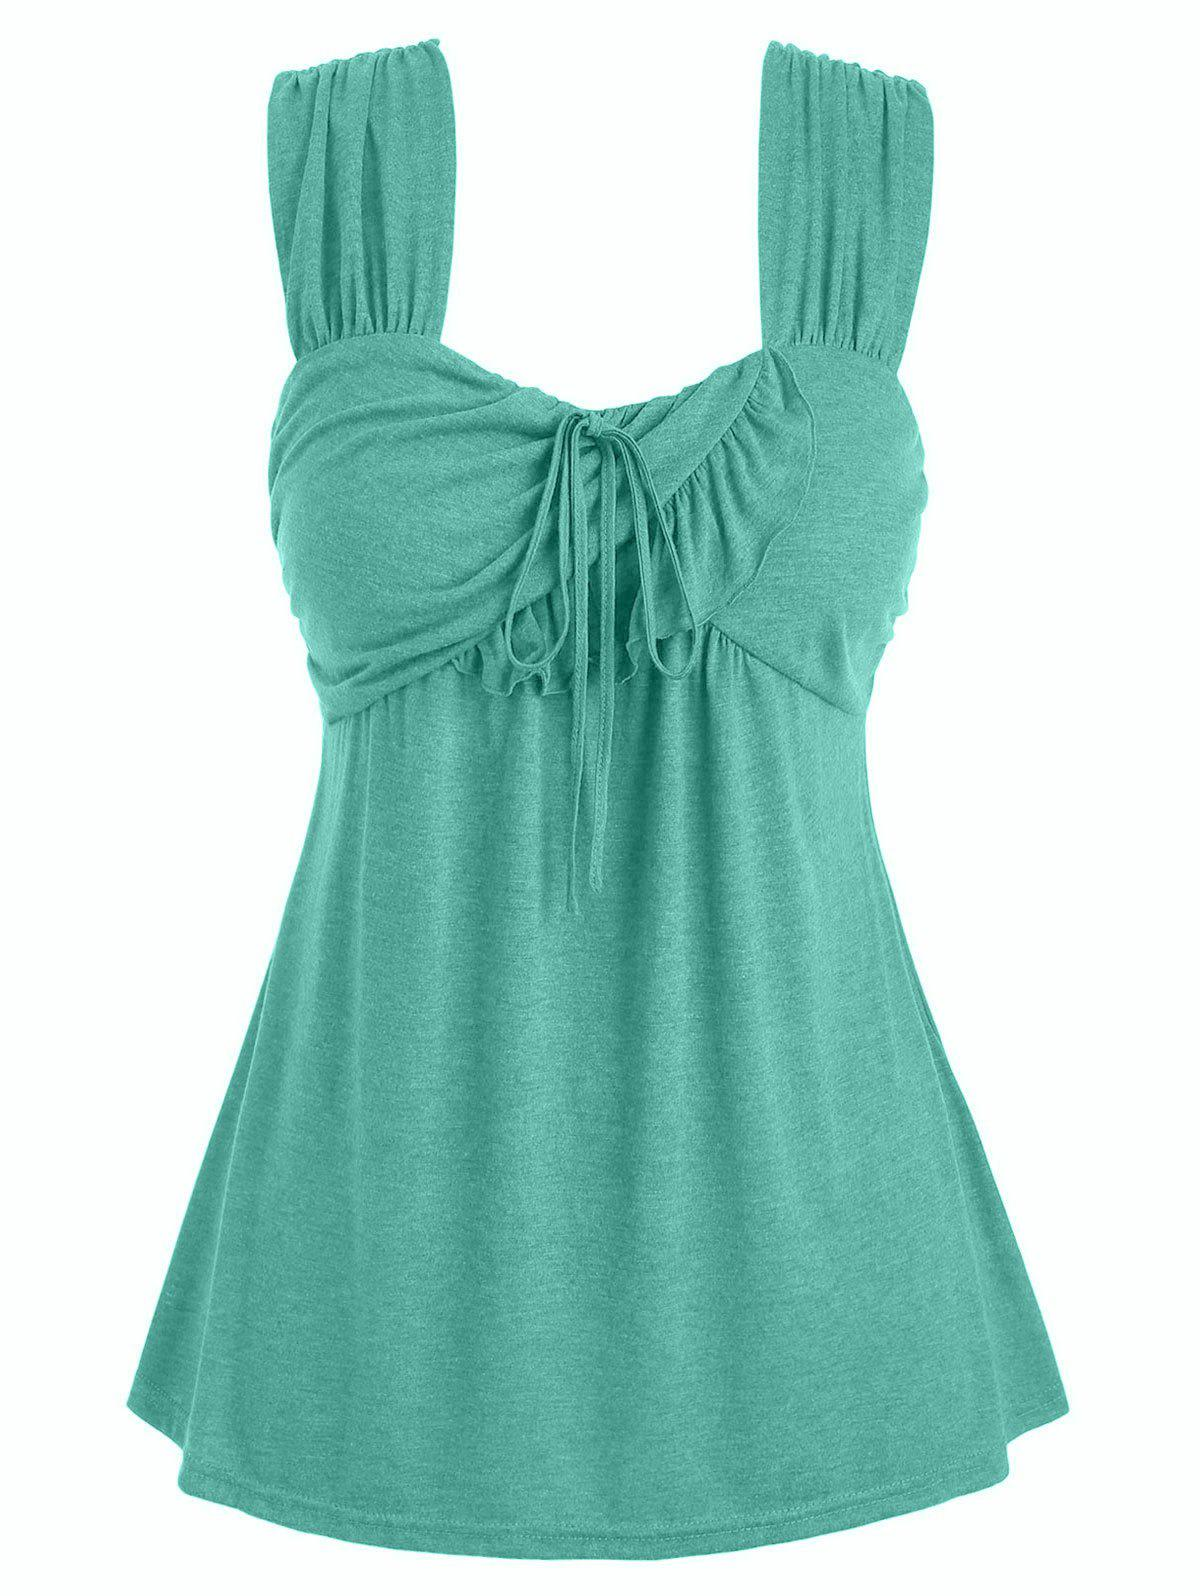 Chic Plus Size Tie Marled Ruffle Tank Top